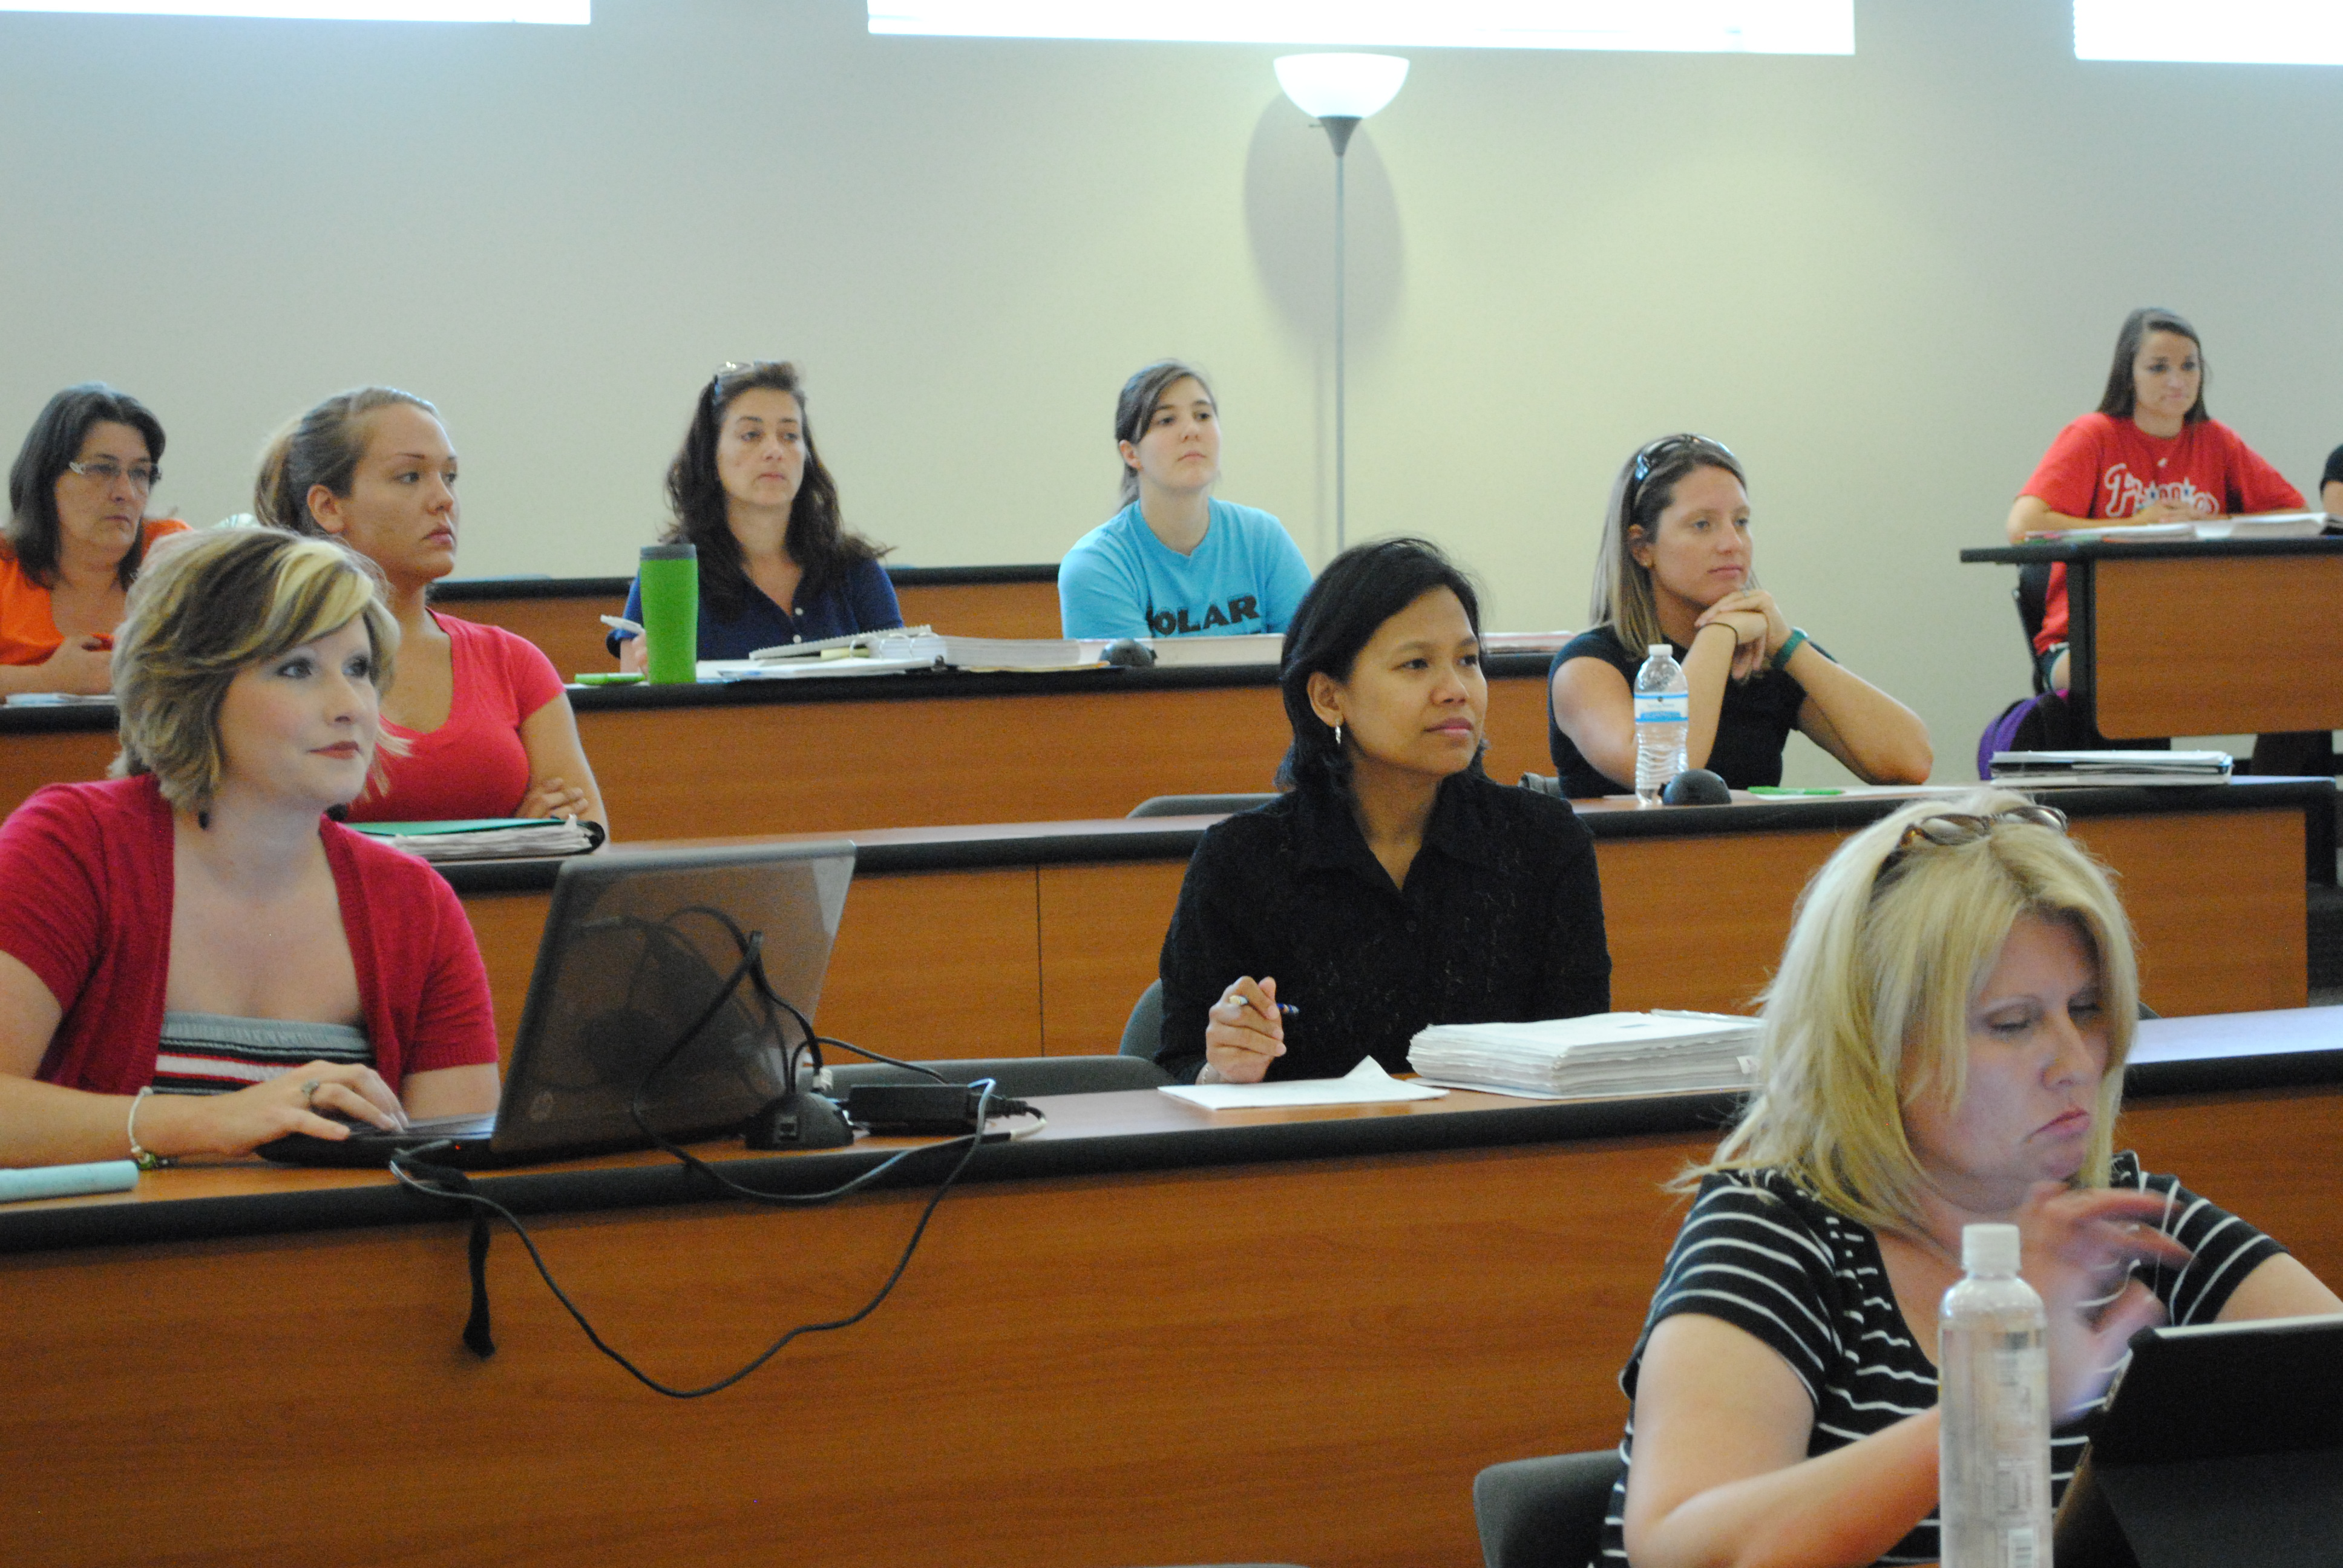 Students in class at WGTC